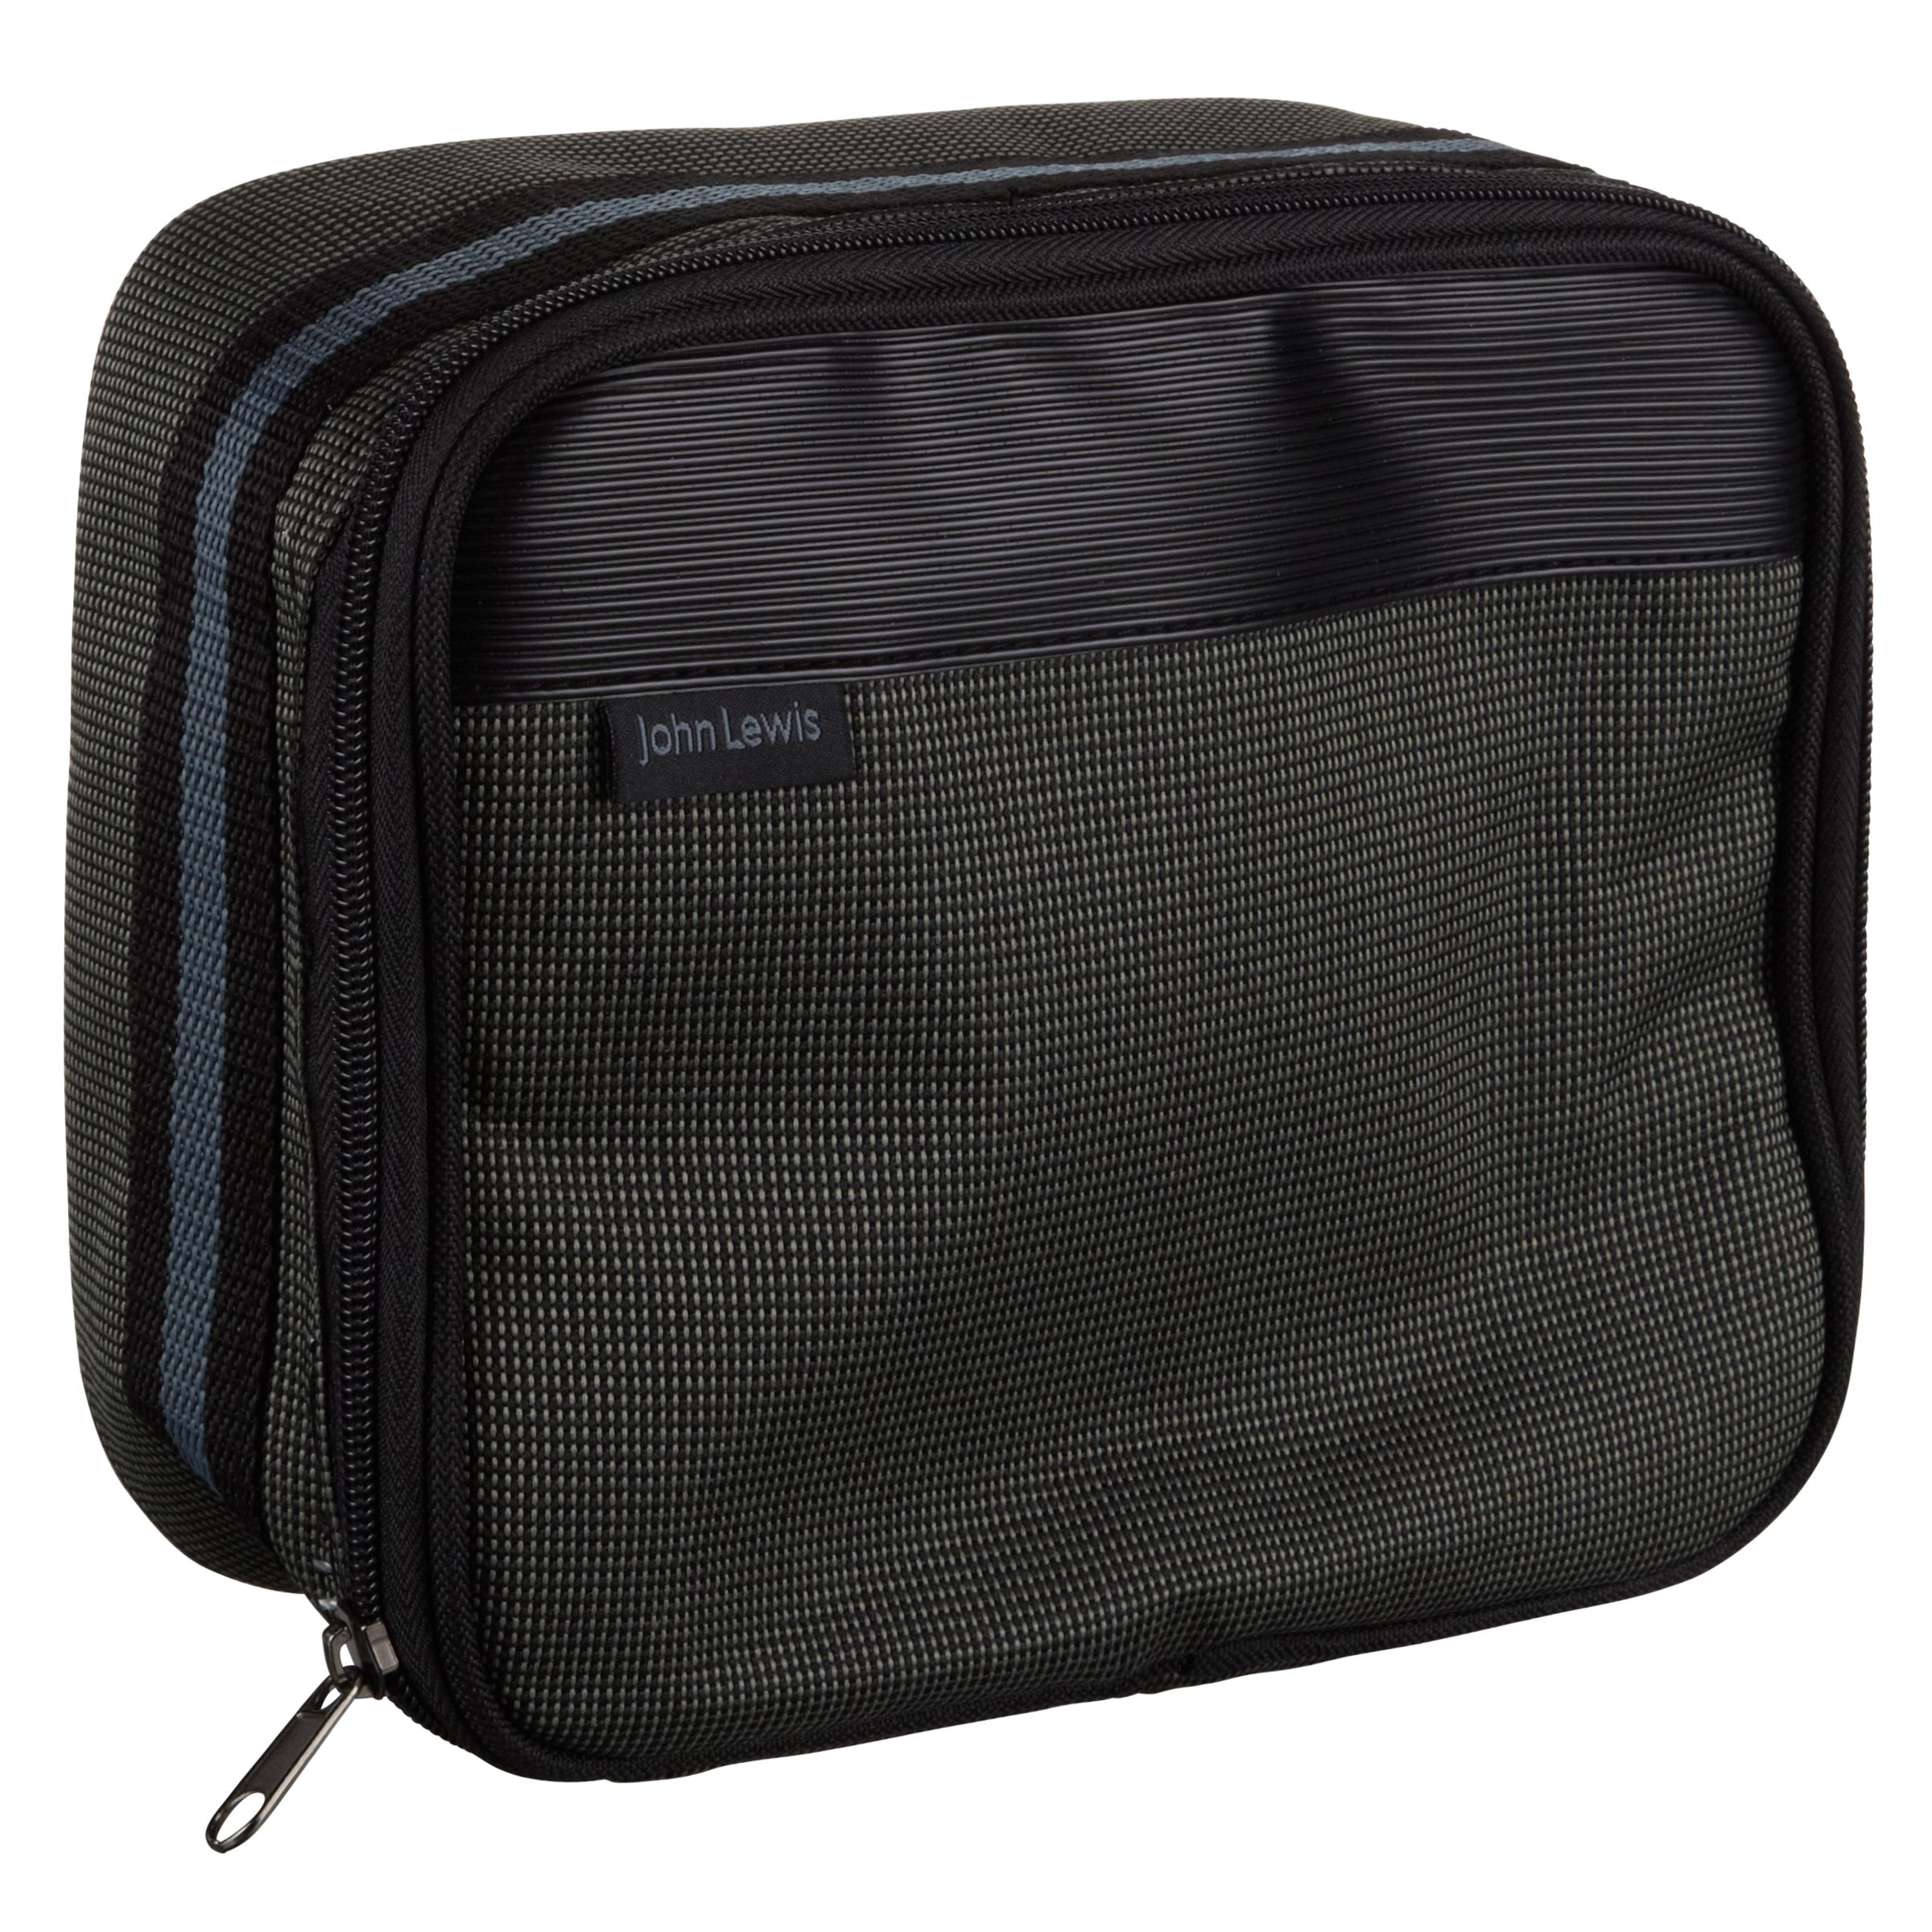 John Lewis Lunch Coolbag, Charcoal